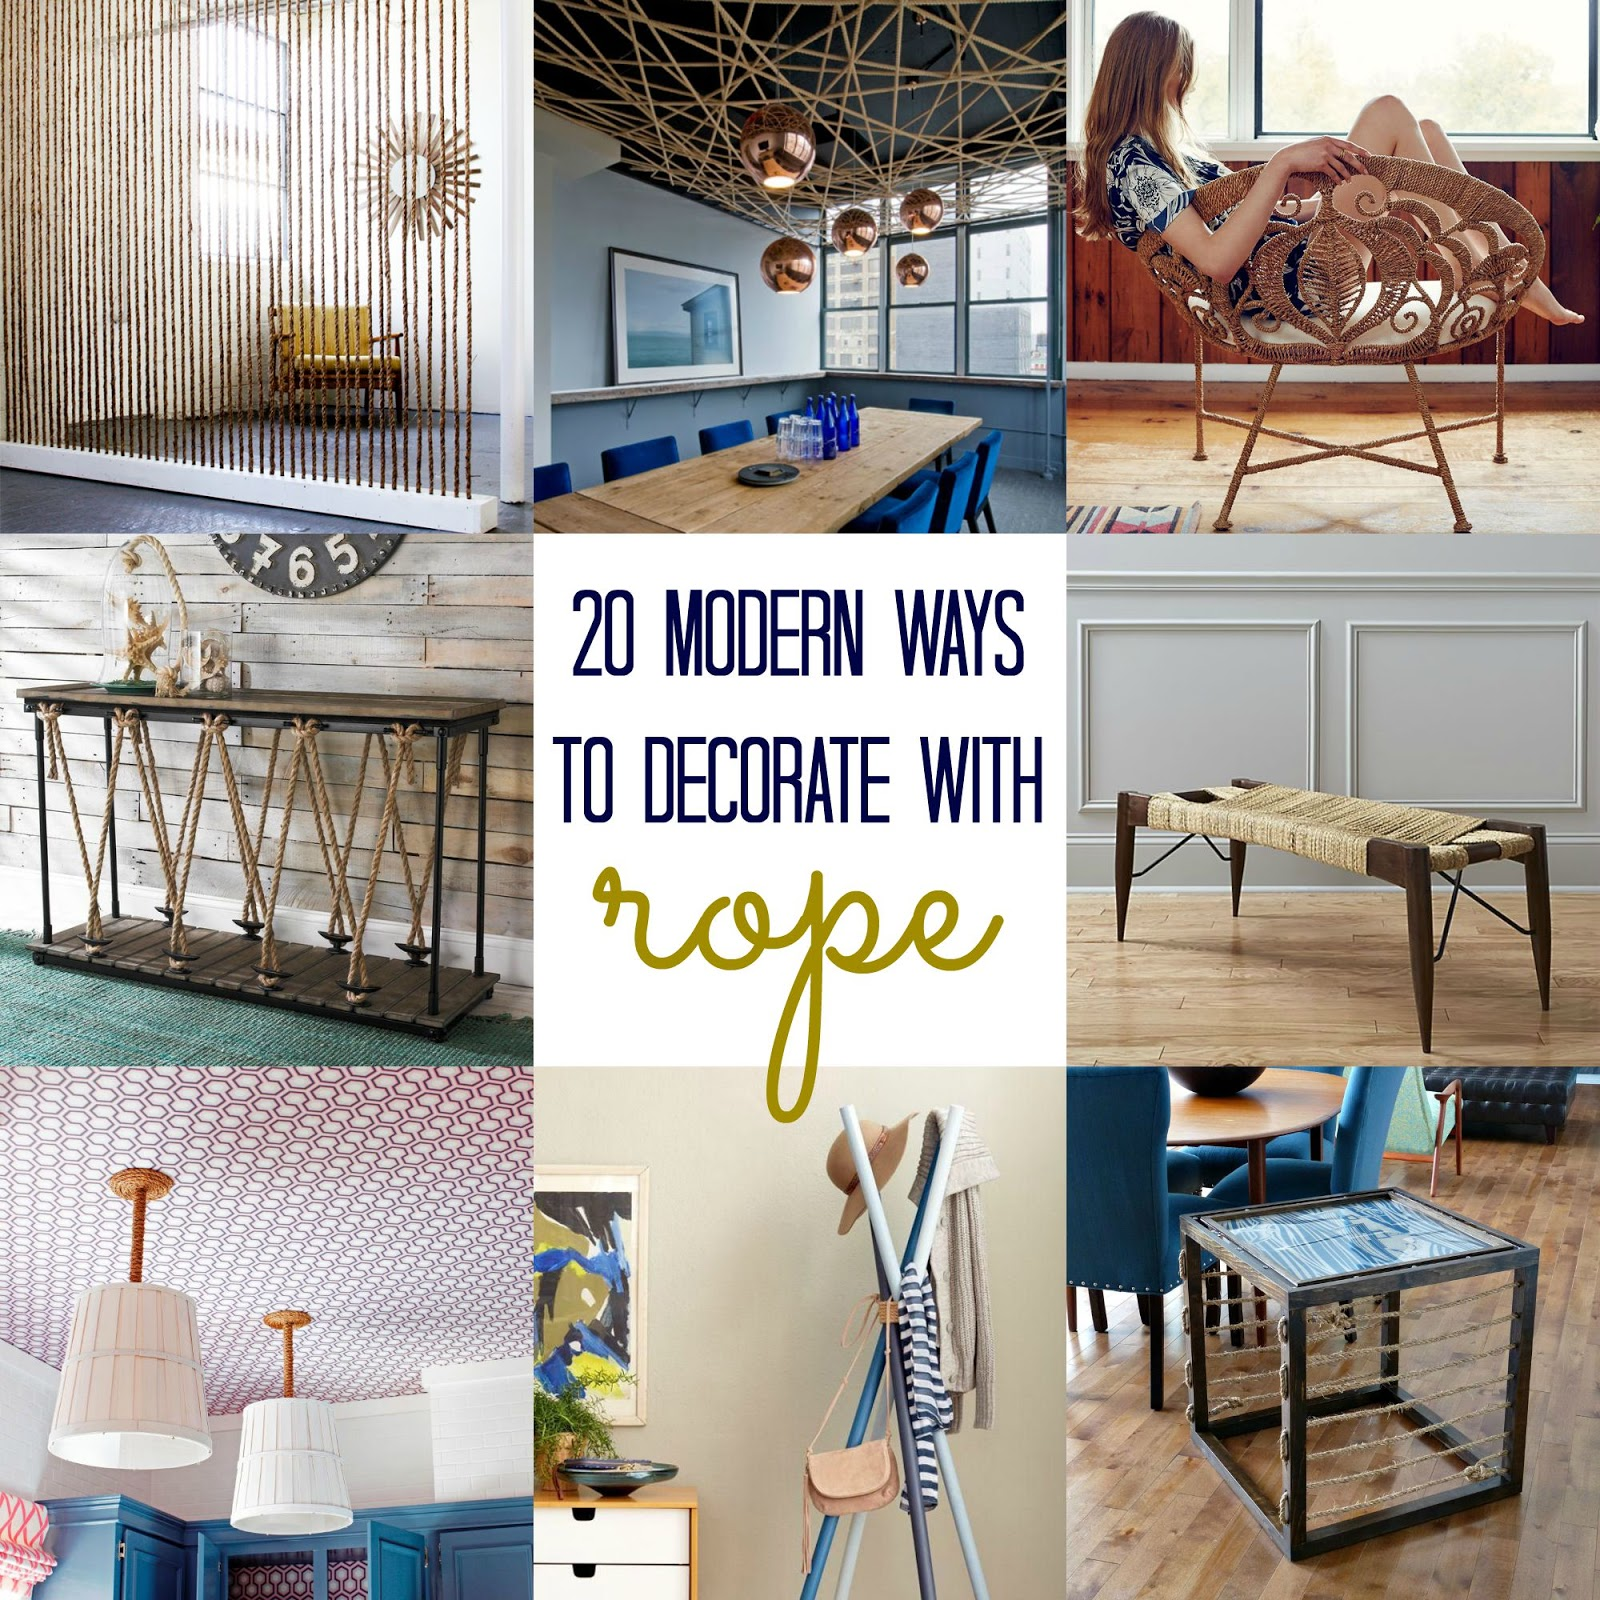 20 Modern Ways to Decorate with Rope